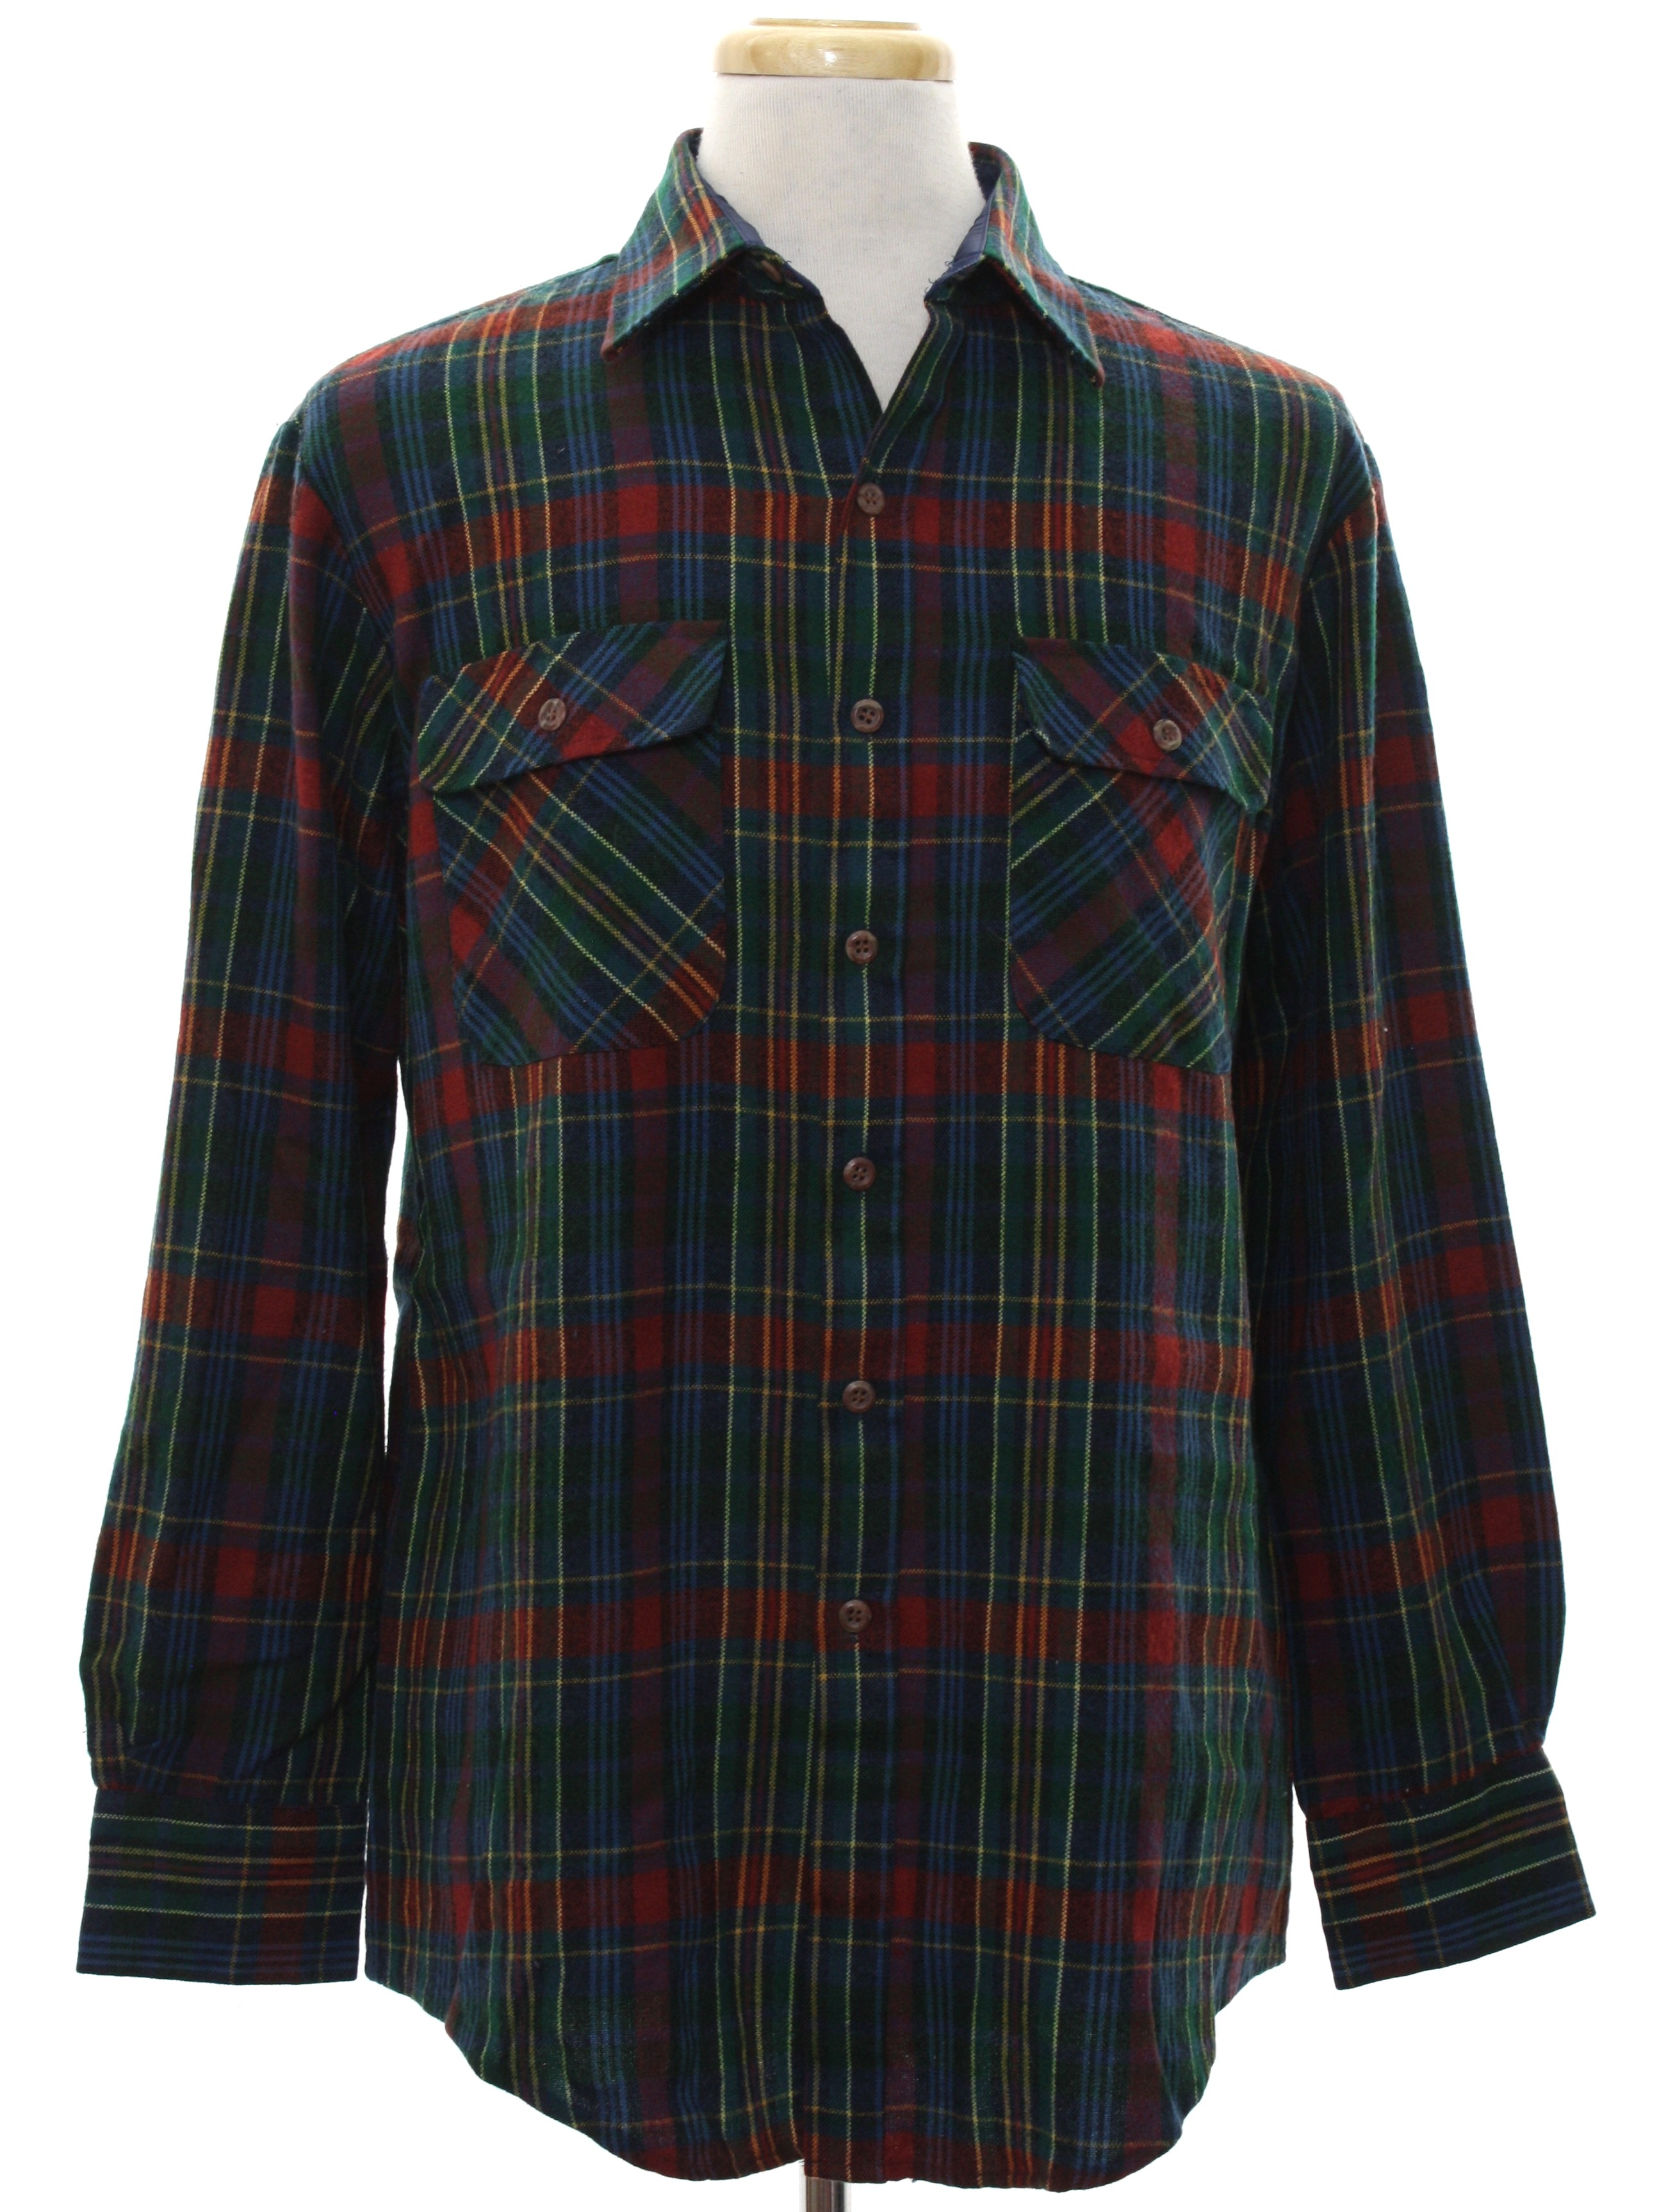 St johns bay eighties vintage shirt 80s st johns bay for Navy blue and red flannel shirt